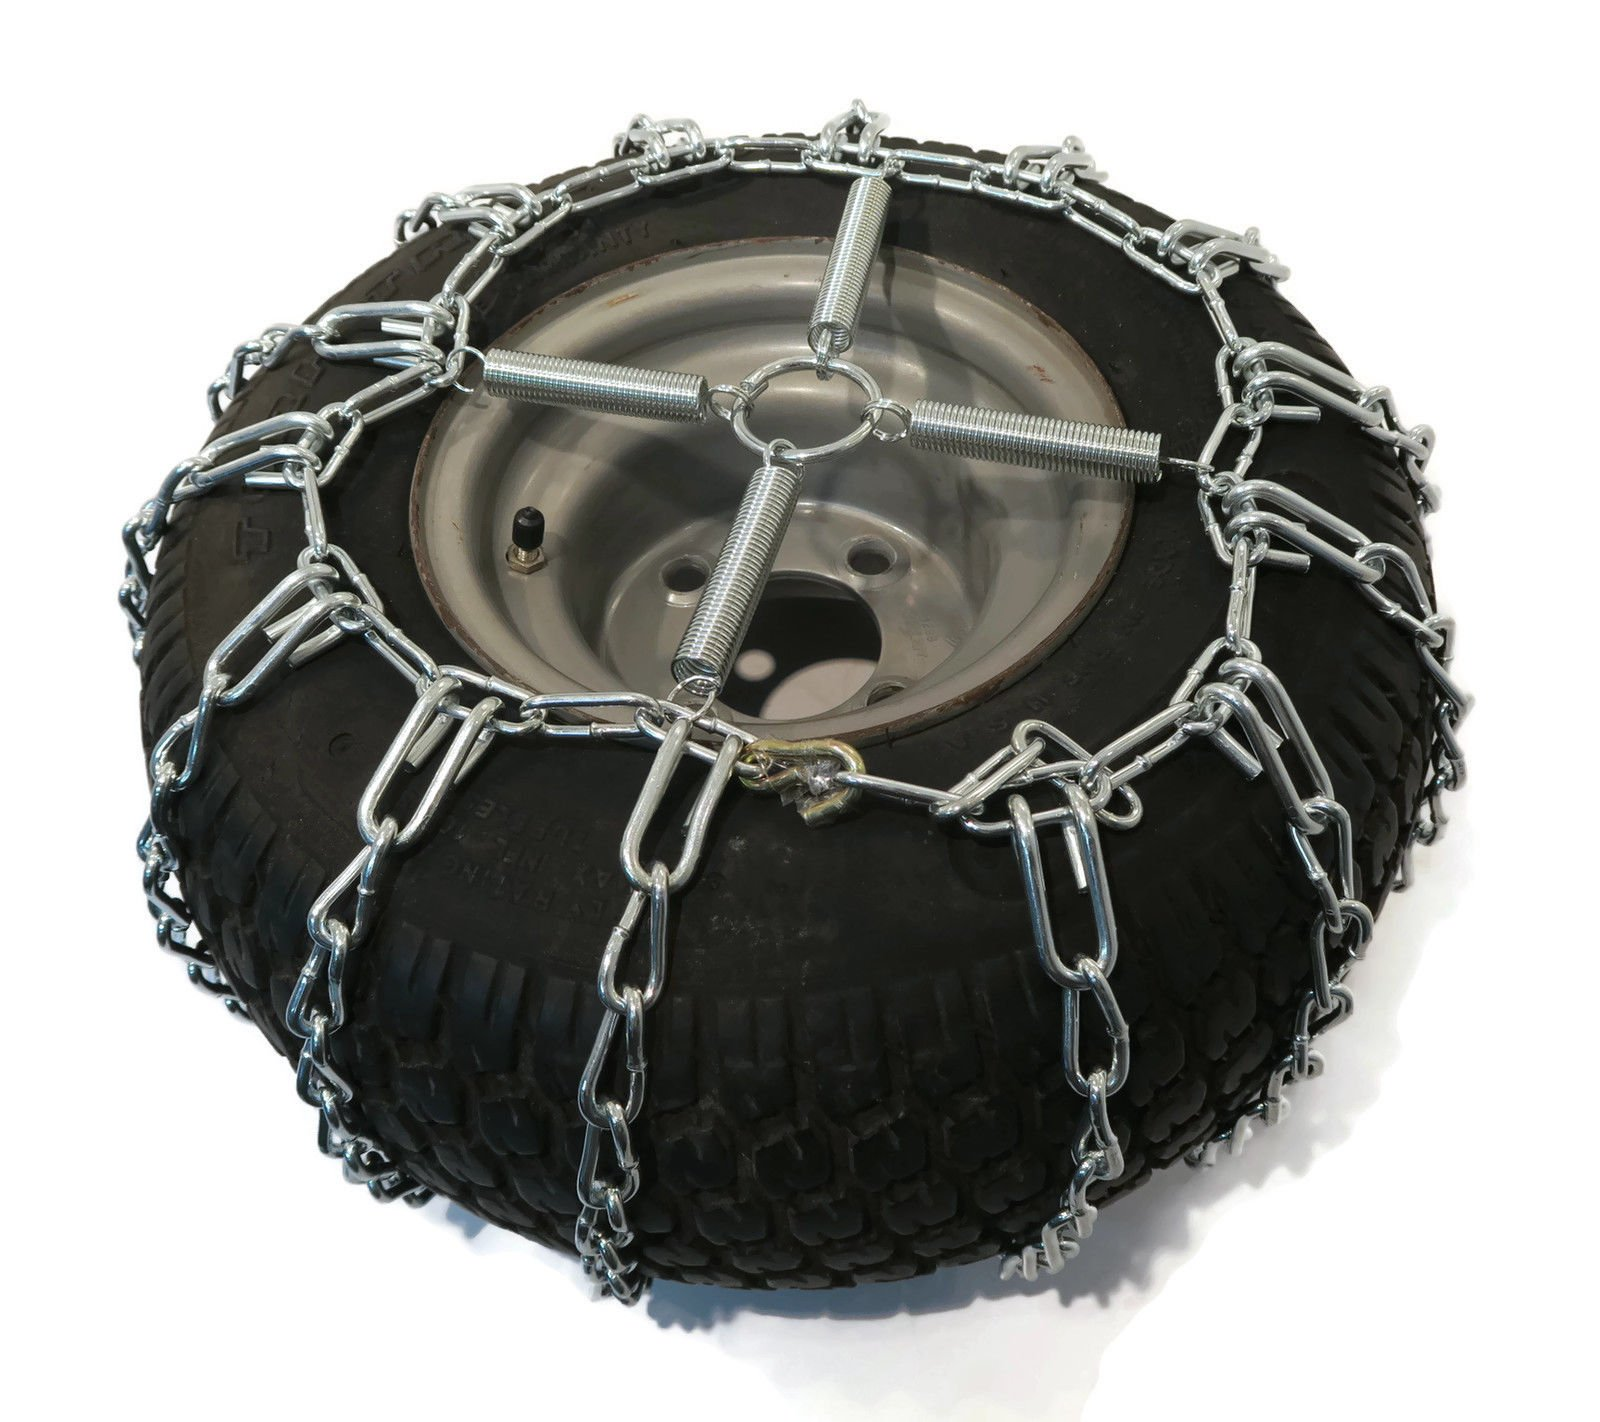 The ROP Shop 2 Link TIRE Chains & TENSIONERS 23x10.5x12 for MTD Cub Cadet Lawn Mower Tractor by The ROP Shop (Image #6)